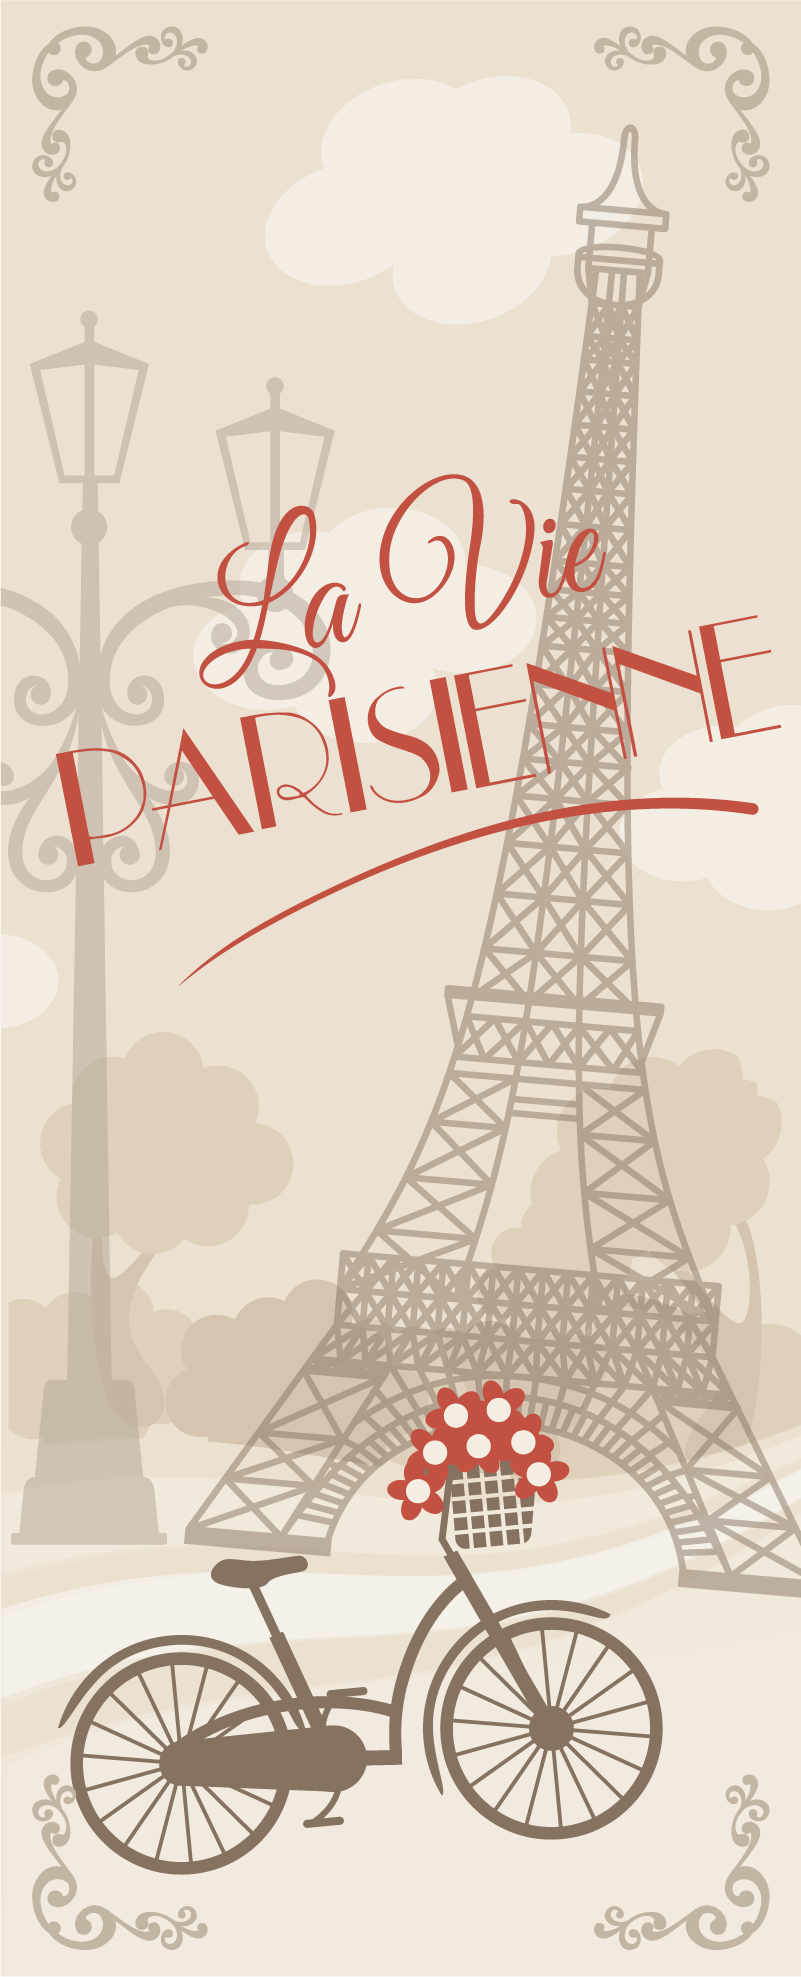 TenStickers. La Vie Parisiene Furniture Sticker. Show your love for the Parisien life with this fantastic fridge sticker, depicting some French words and the Eiffel Tower!